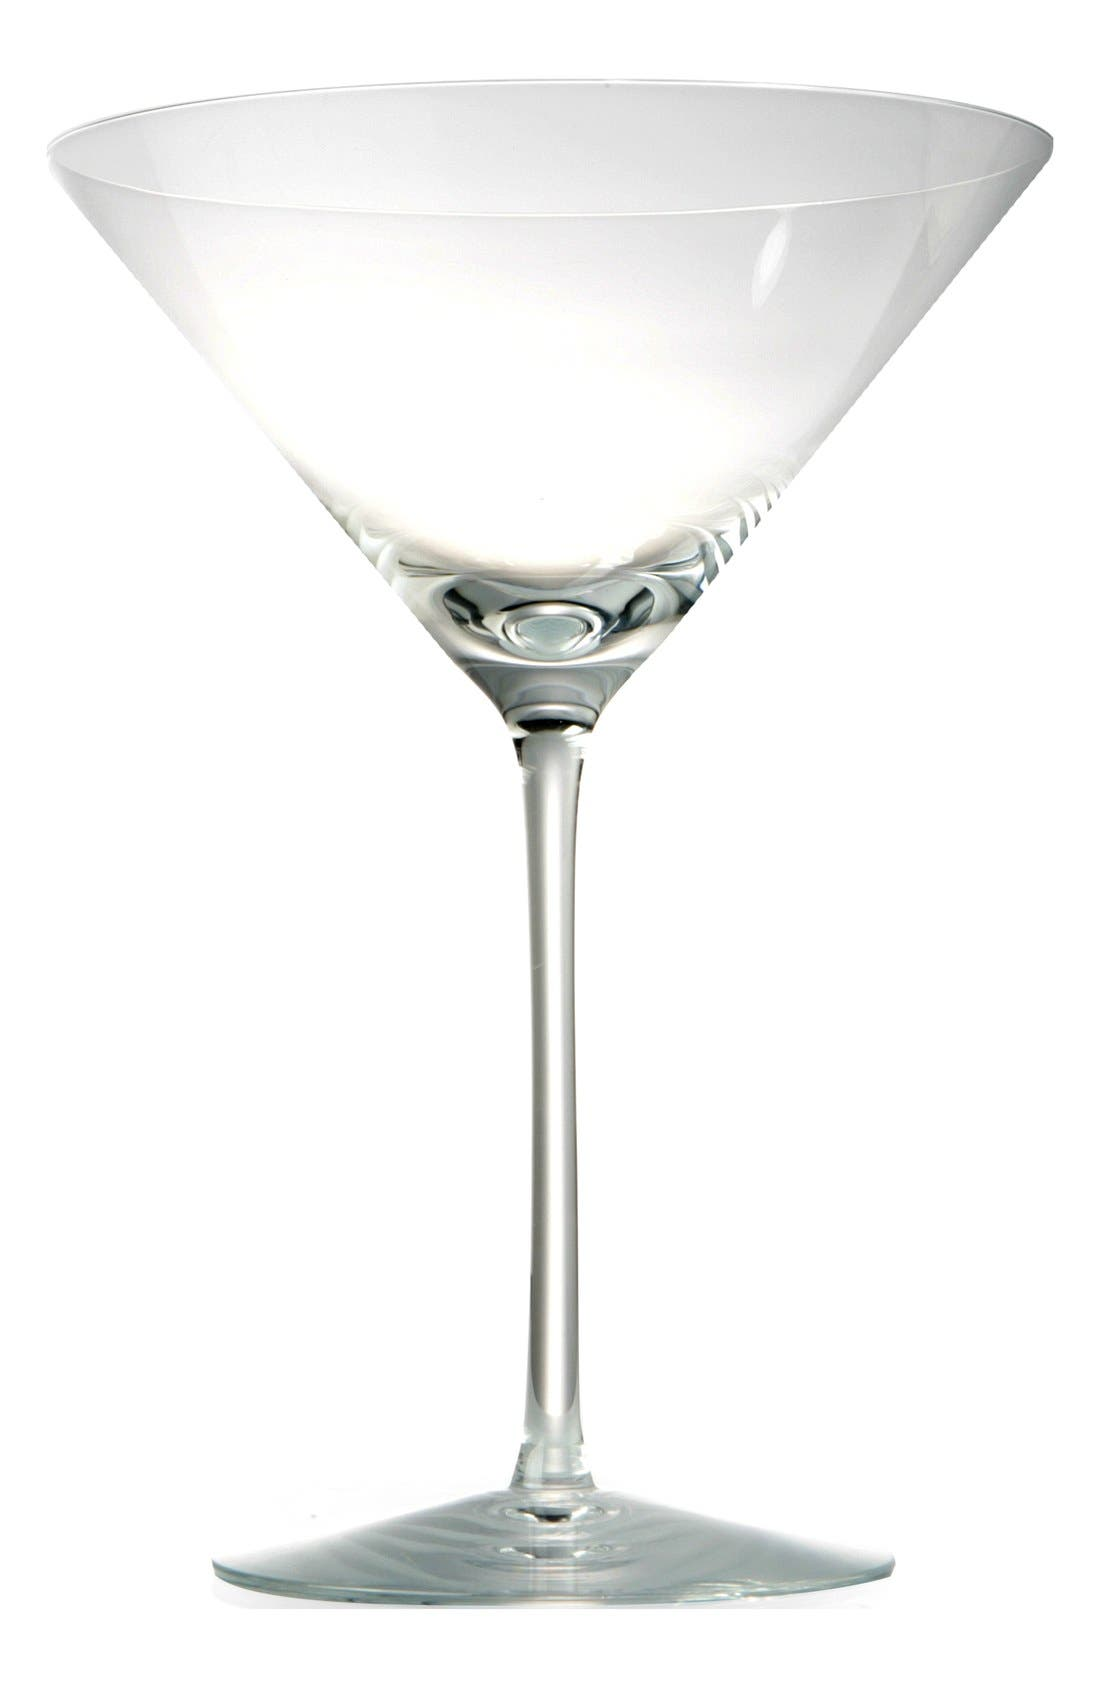 Rogaska Crystal 'Expert' Martini Glasses (Set of 2)